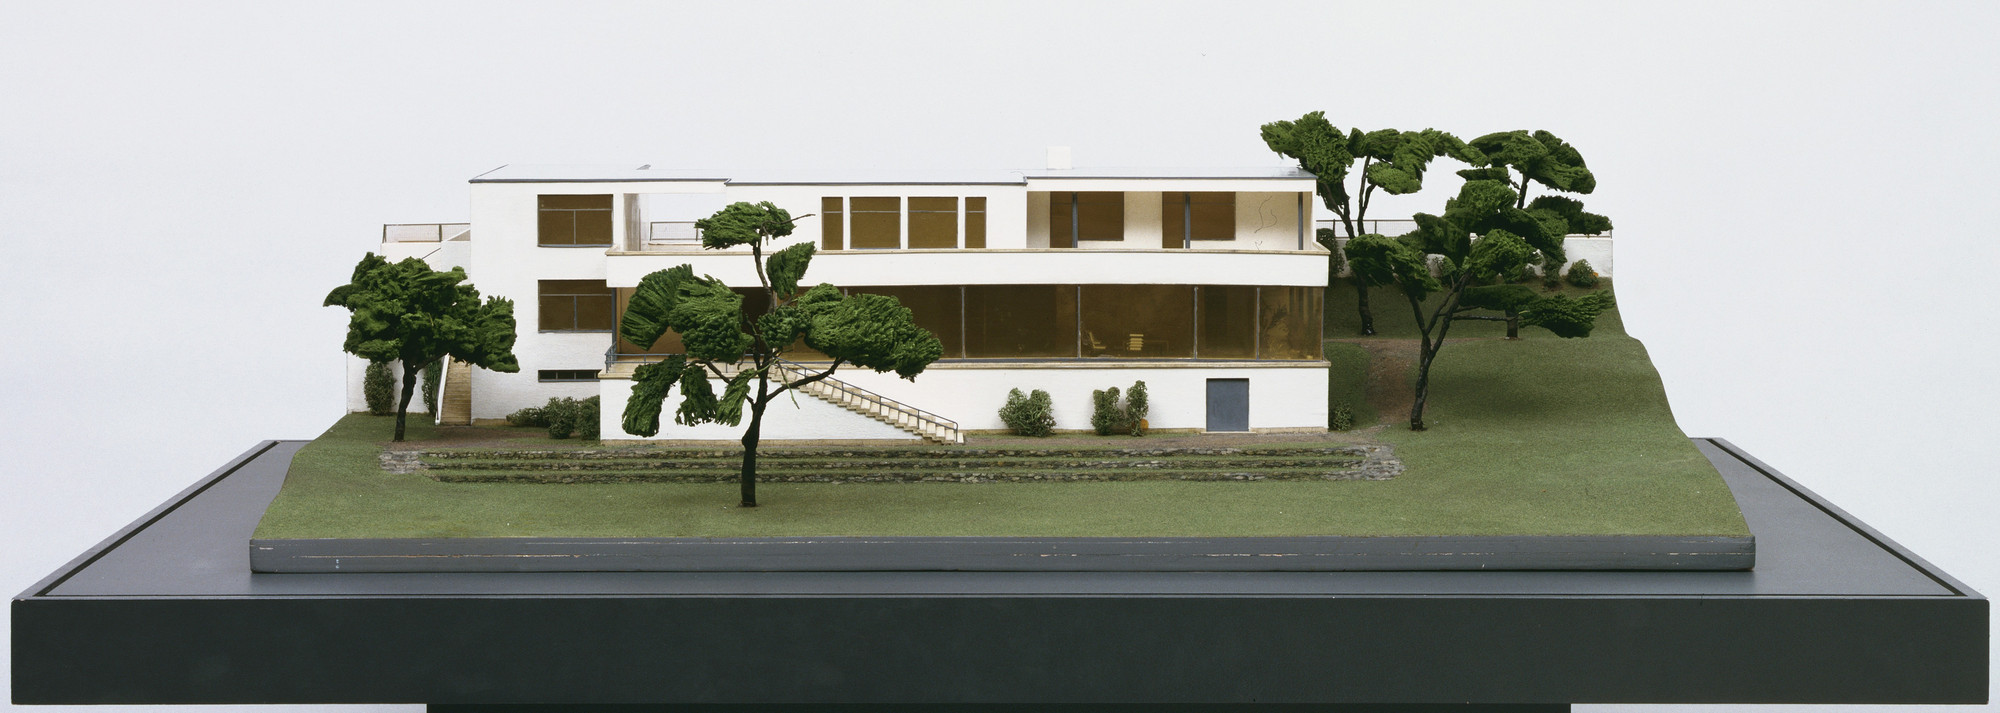 Ludwig Mies van der Rohe. Tugendhat House, Brno, Czechoslovakia (Model of final version). 1928-1930